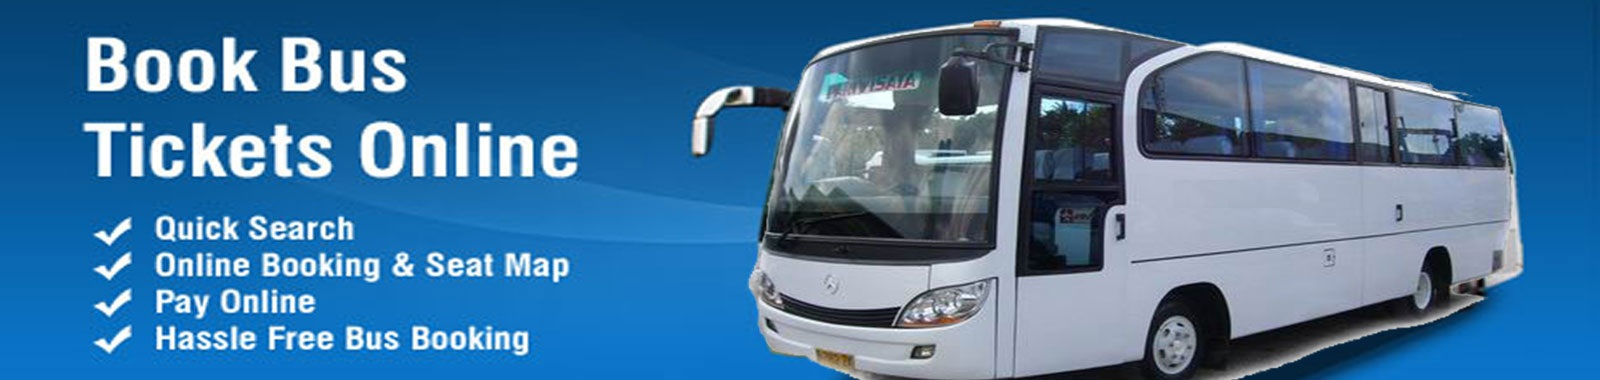 Bus Booking Services |  La Esperanza Travels